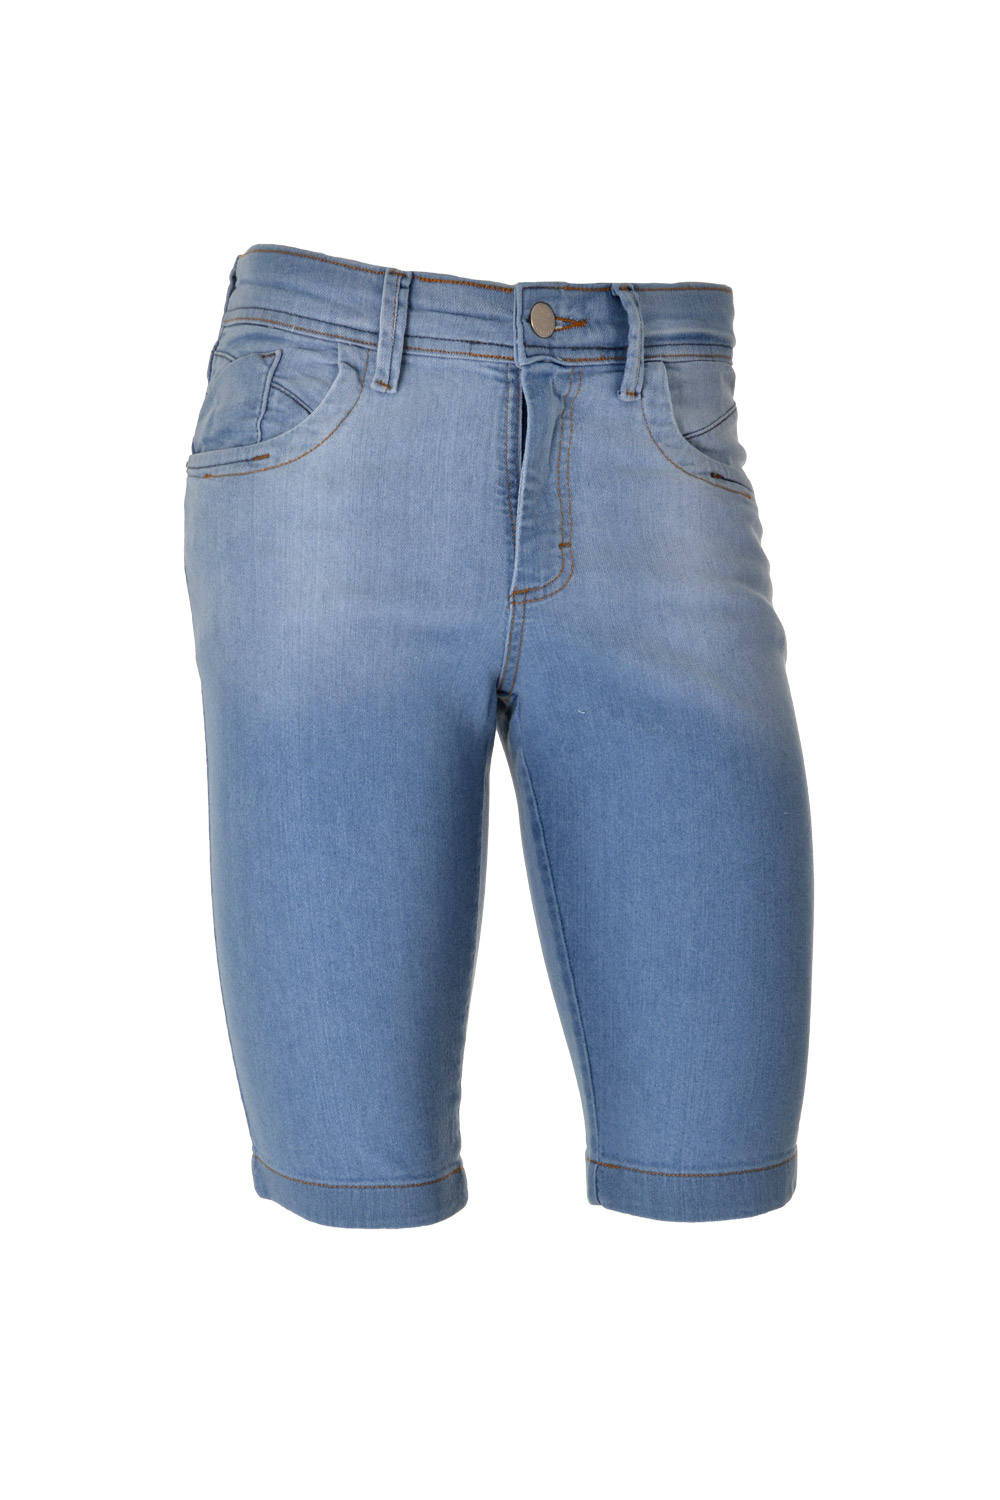 BERMUDA BLUES POLIALGODAO E ELASTANO STRETCH STONED DELAVE